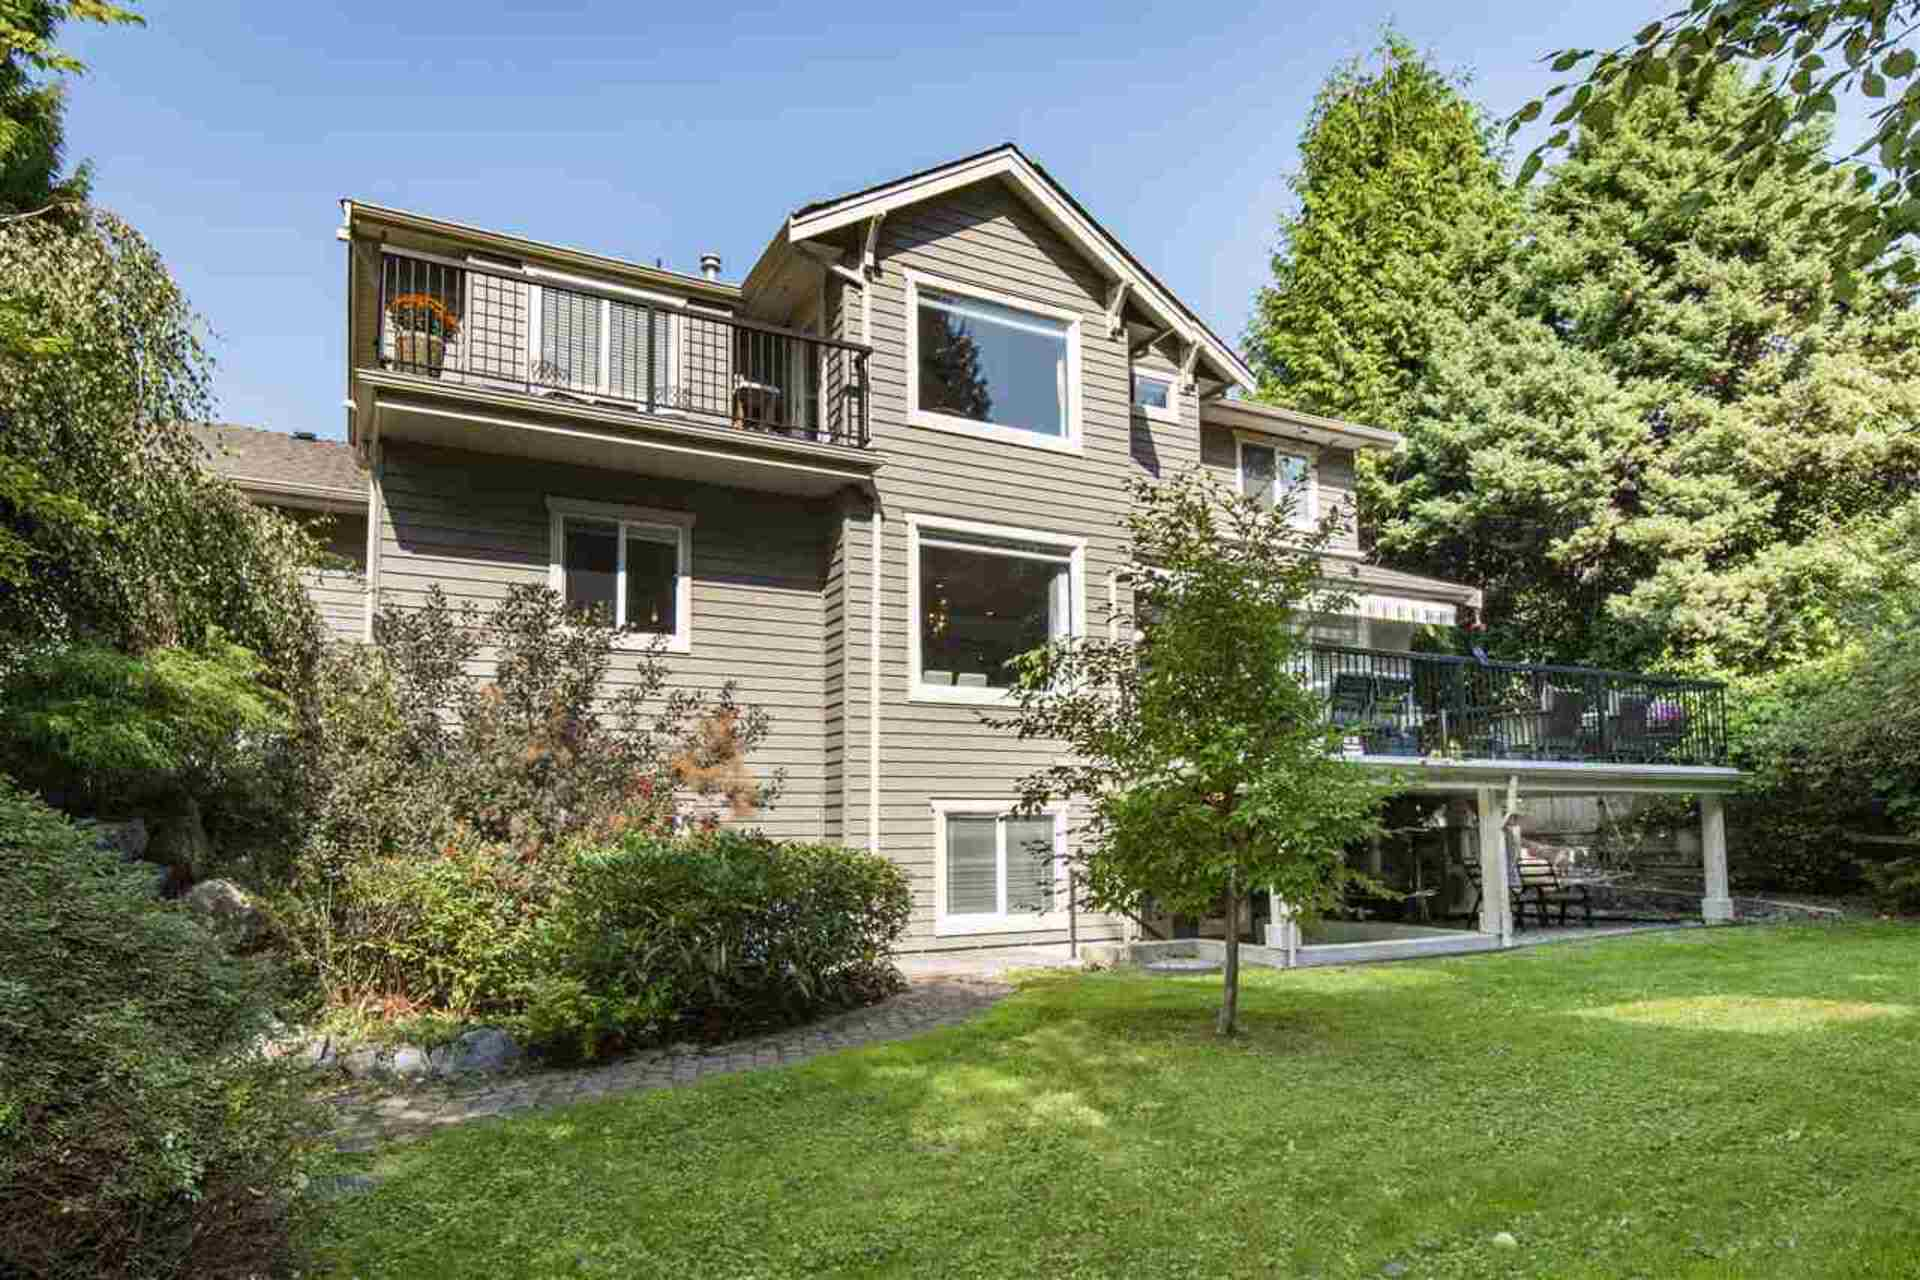 76-glengarry-crescent-glenmore-west-vancouver-37 at 76 Glengarry Crescent, Glenmore, West Vancouver